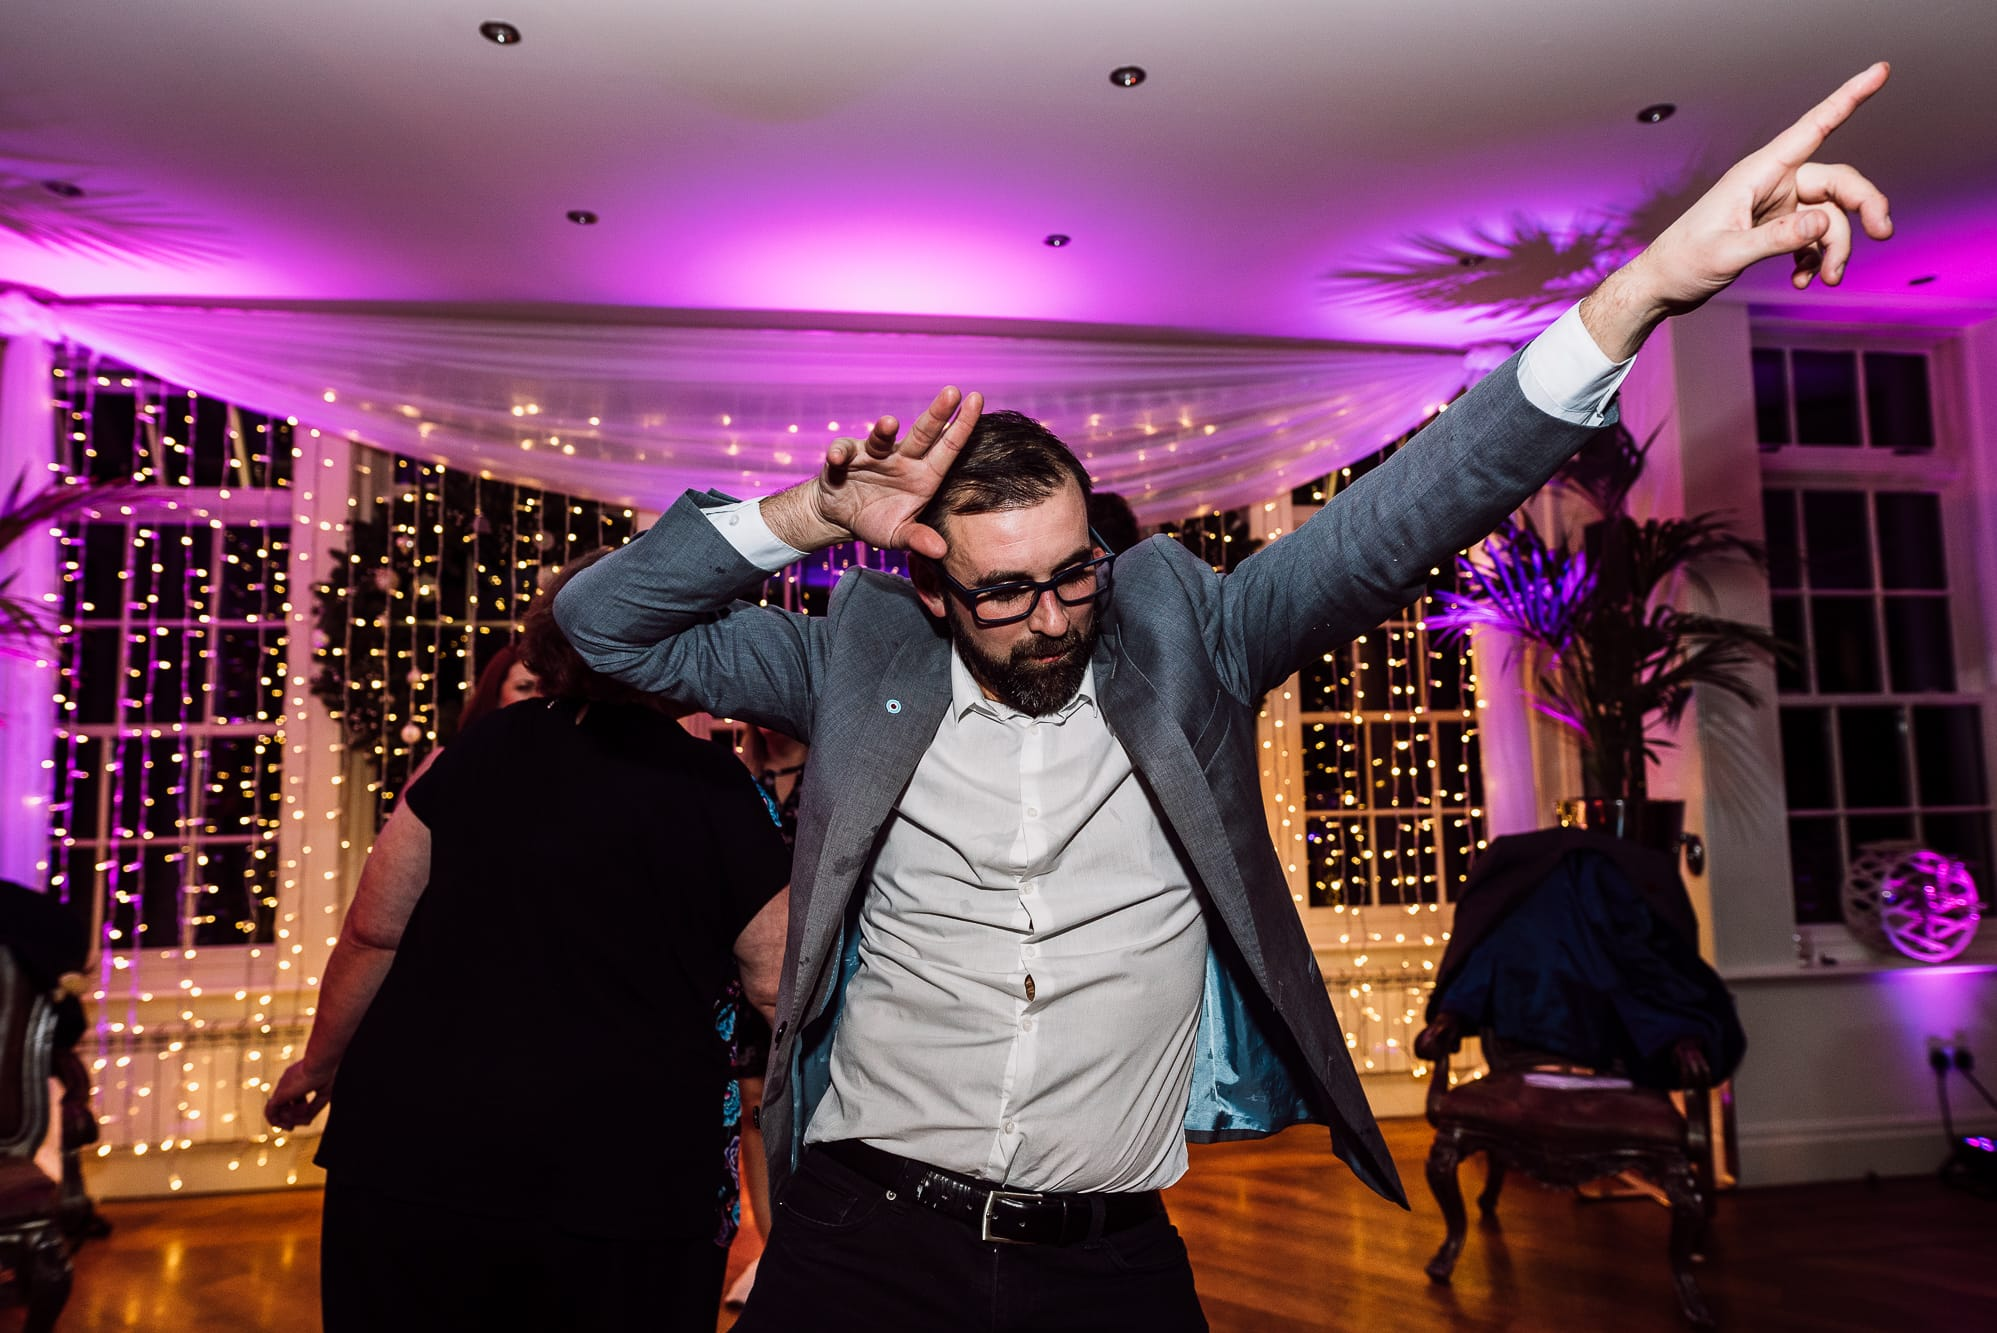 male Guest dancing at Mitton hall